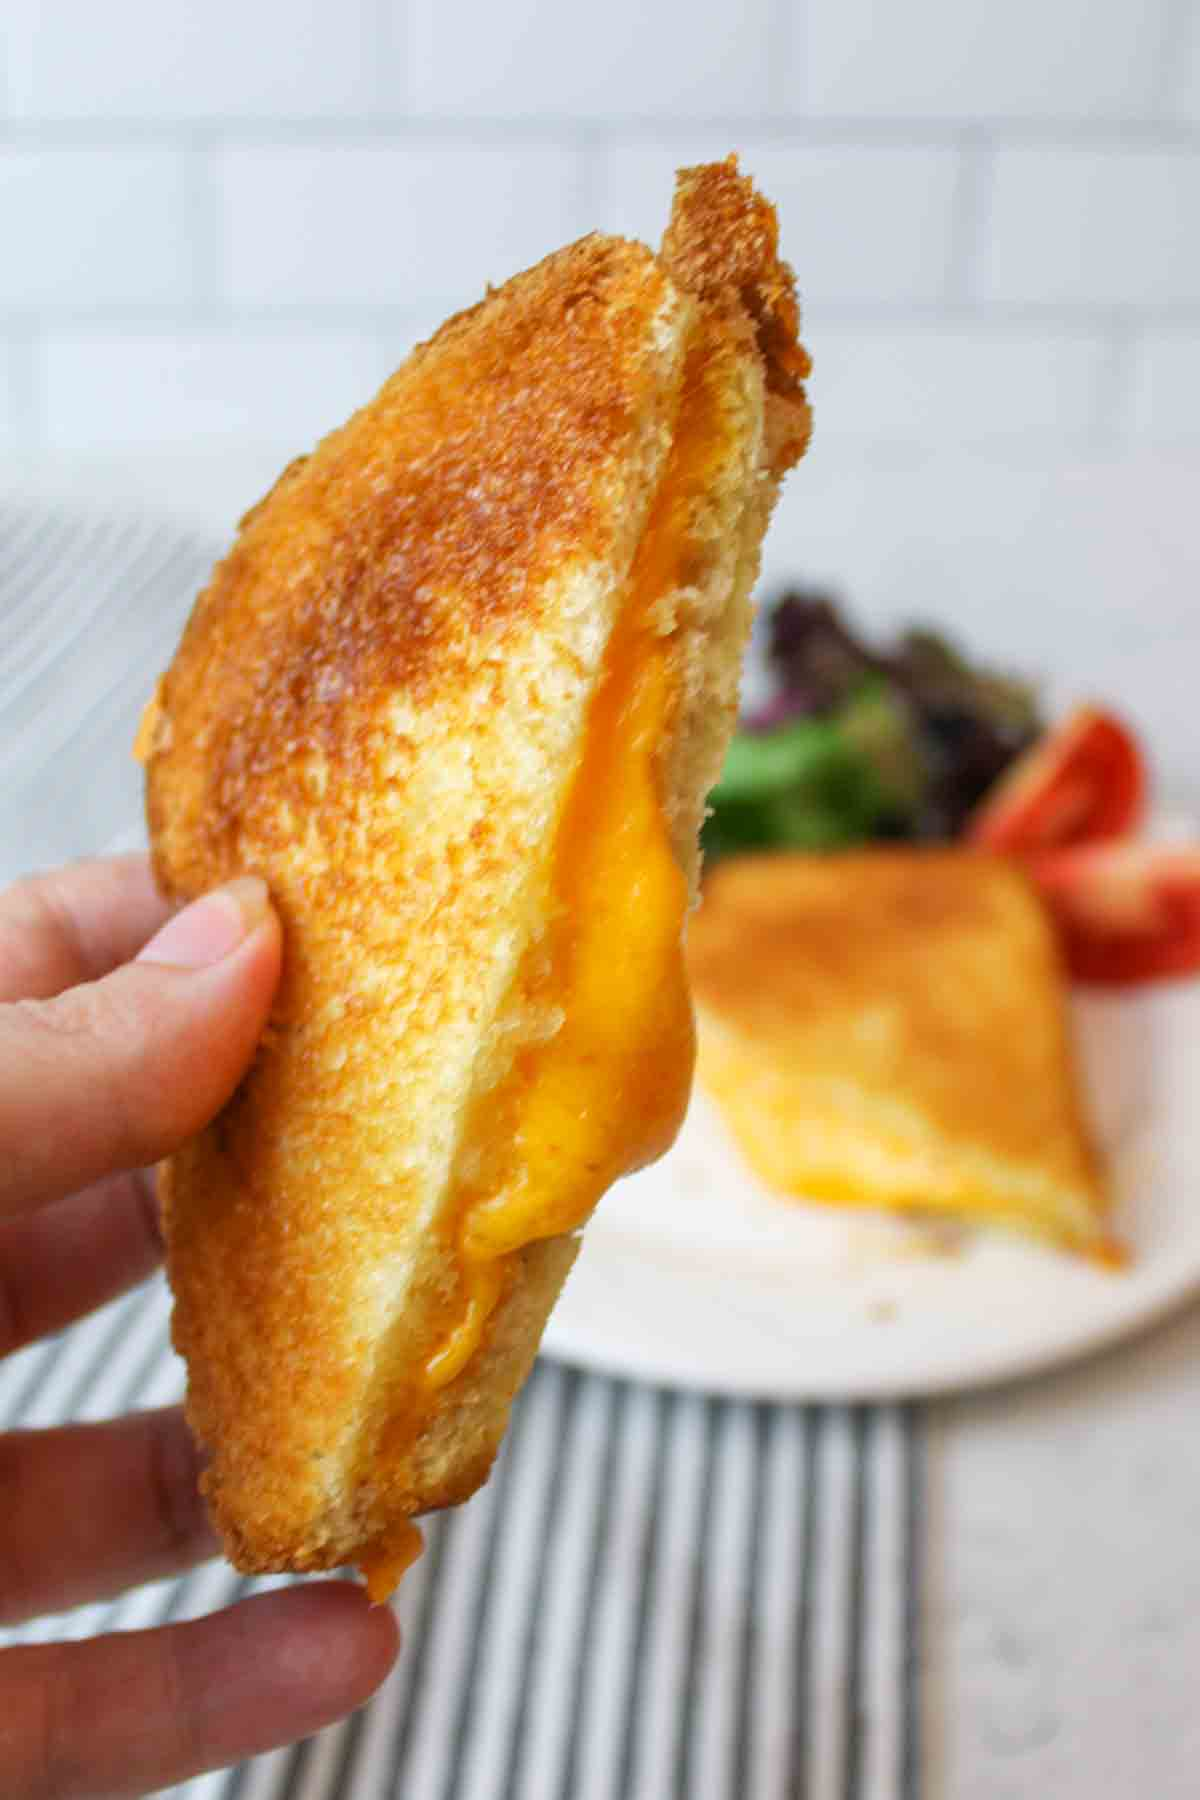 gooey melted cheese coming out of a microwave grilled cheese